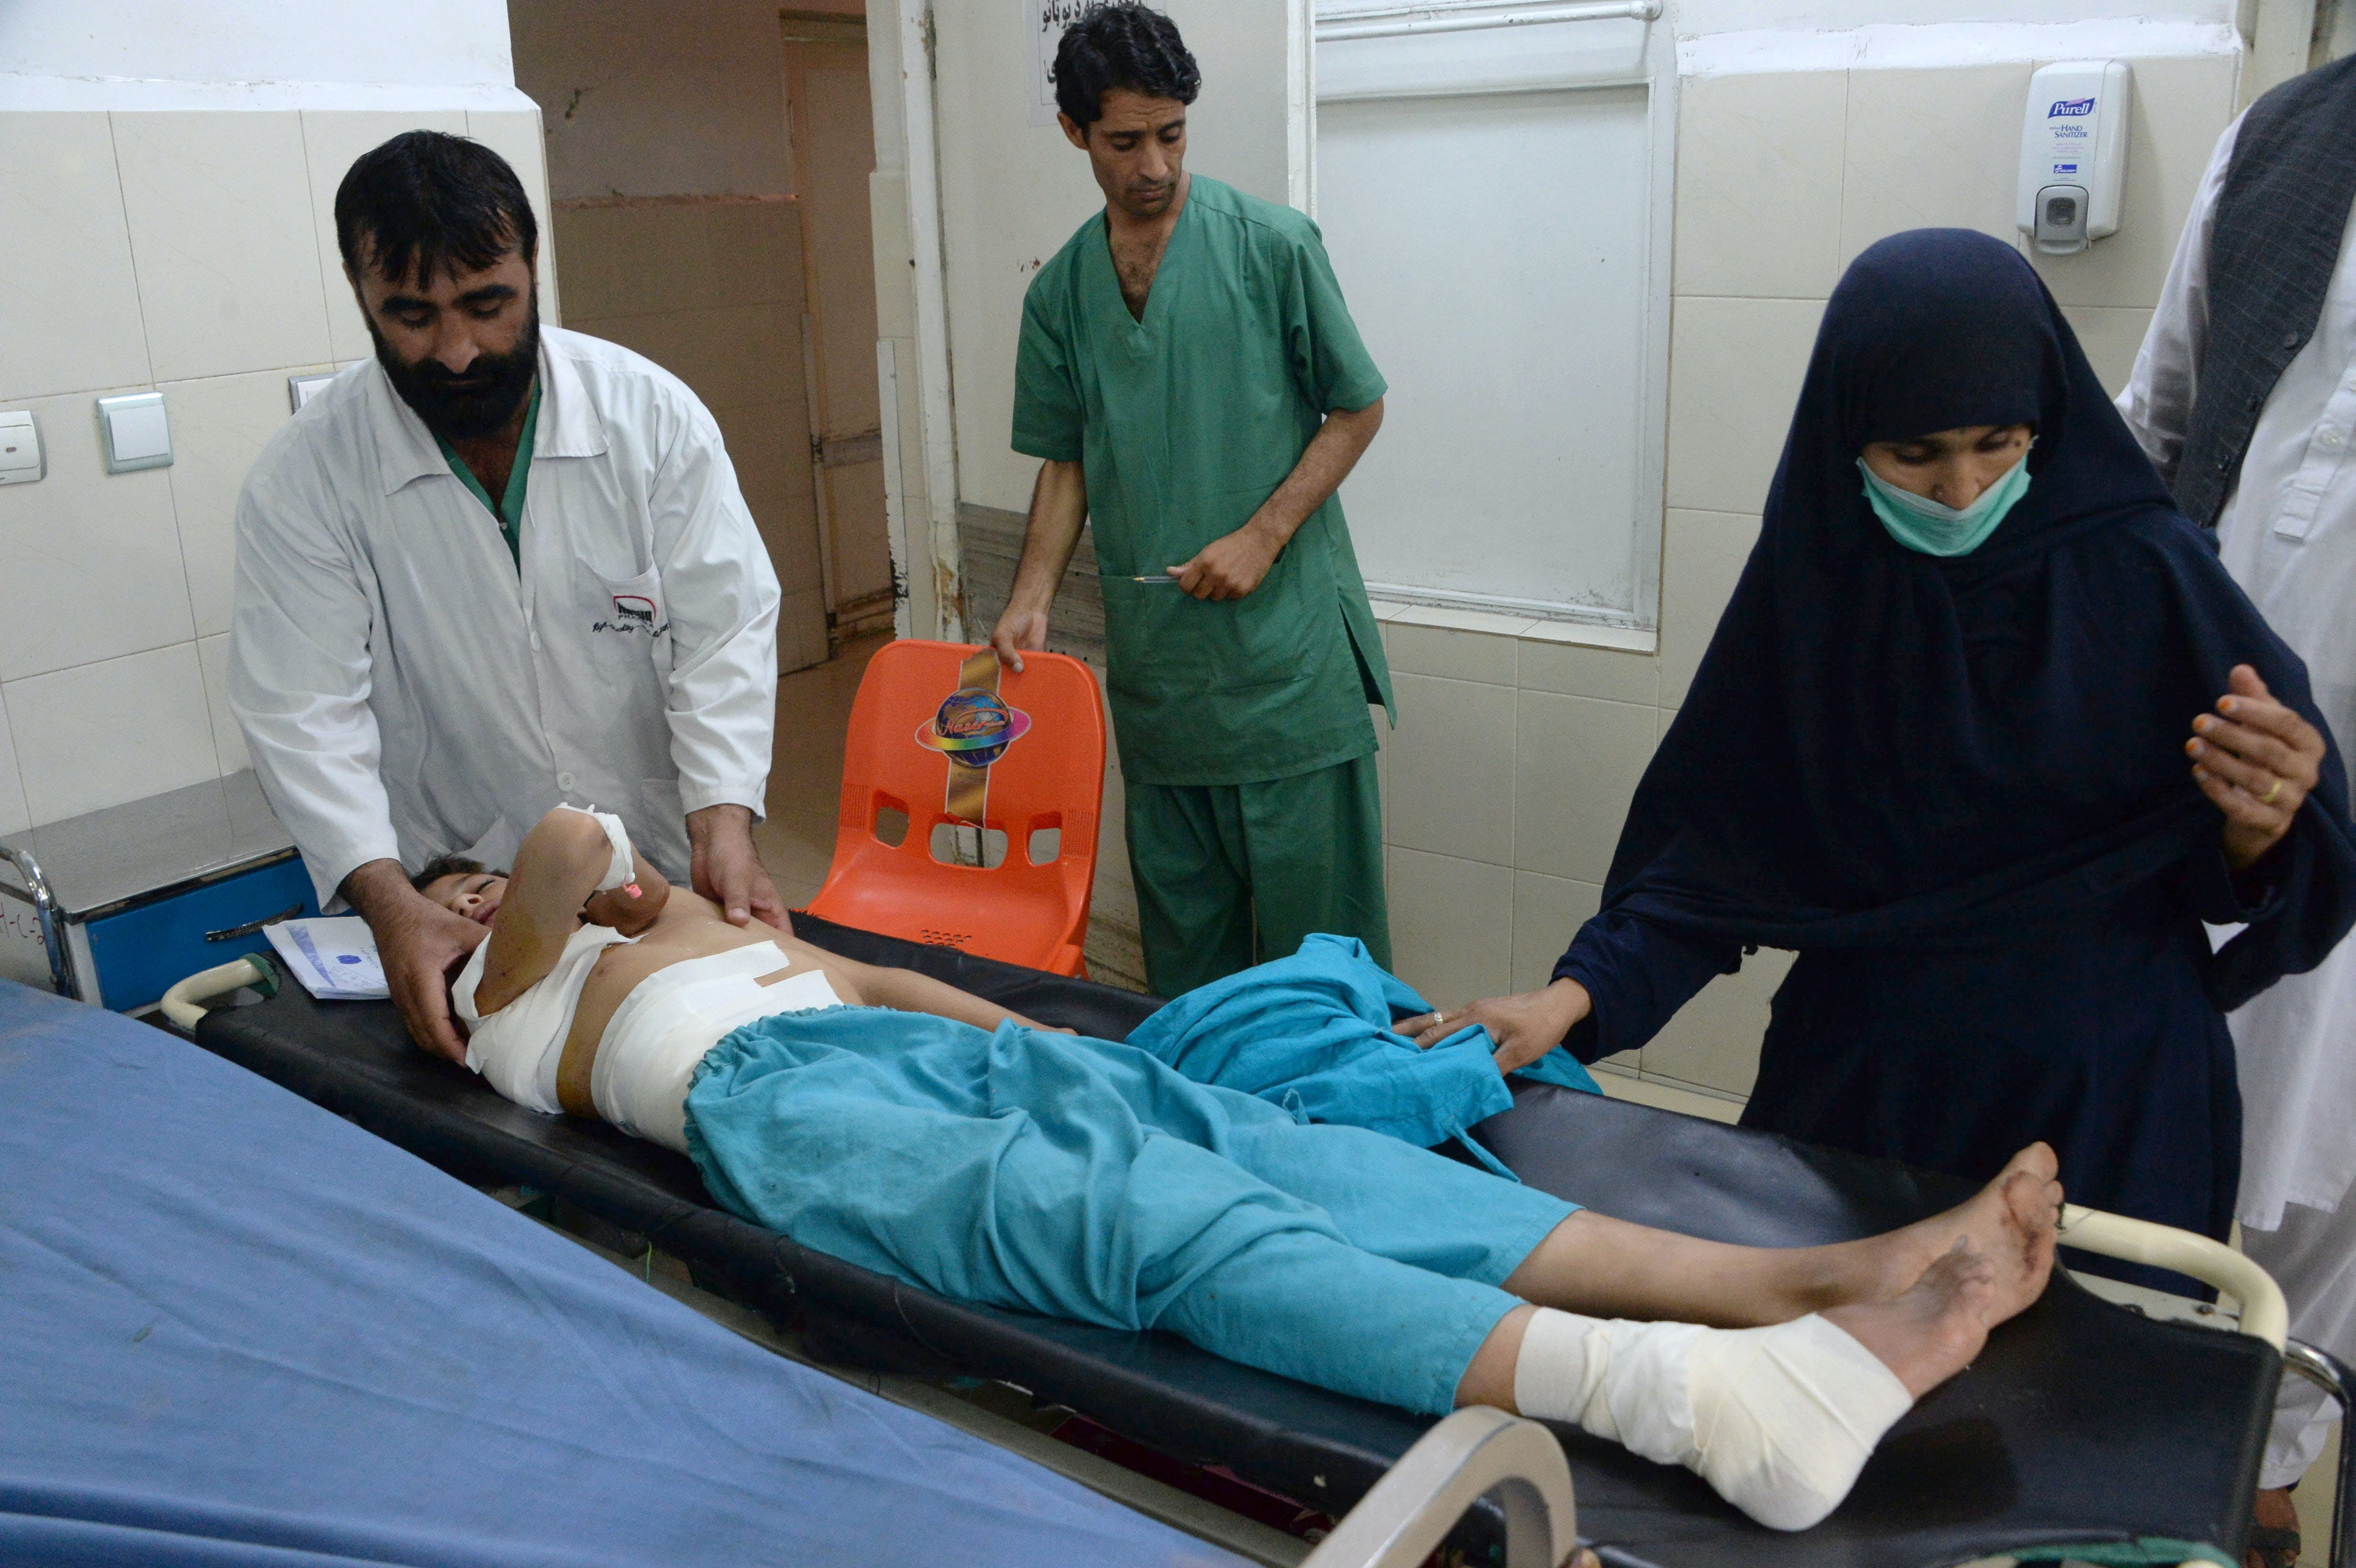 An injured Afghan youth receives treatment at a hospital following a suspected US drone airstrike in the Achin district of Nangarhar province on September 28,2016.